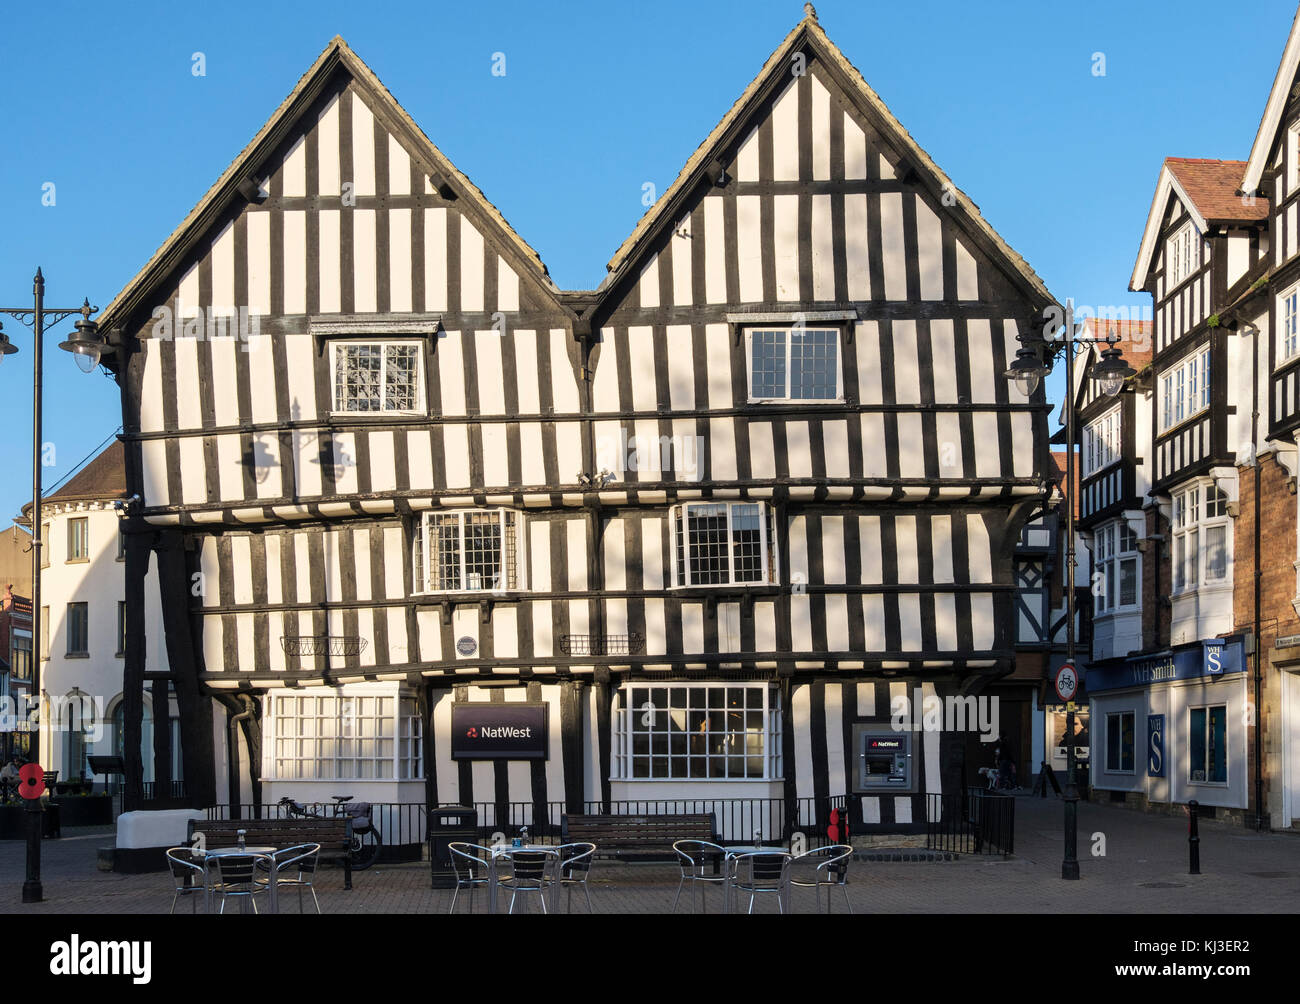 Twin gabled 15th-century timbered merchants house now NatWest bank in Cotswolds town. Market Square, Evesham, Wychavon, - Stock Image